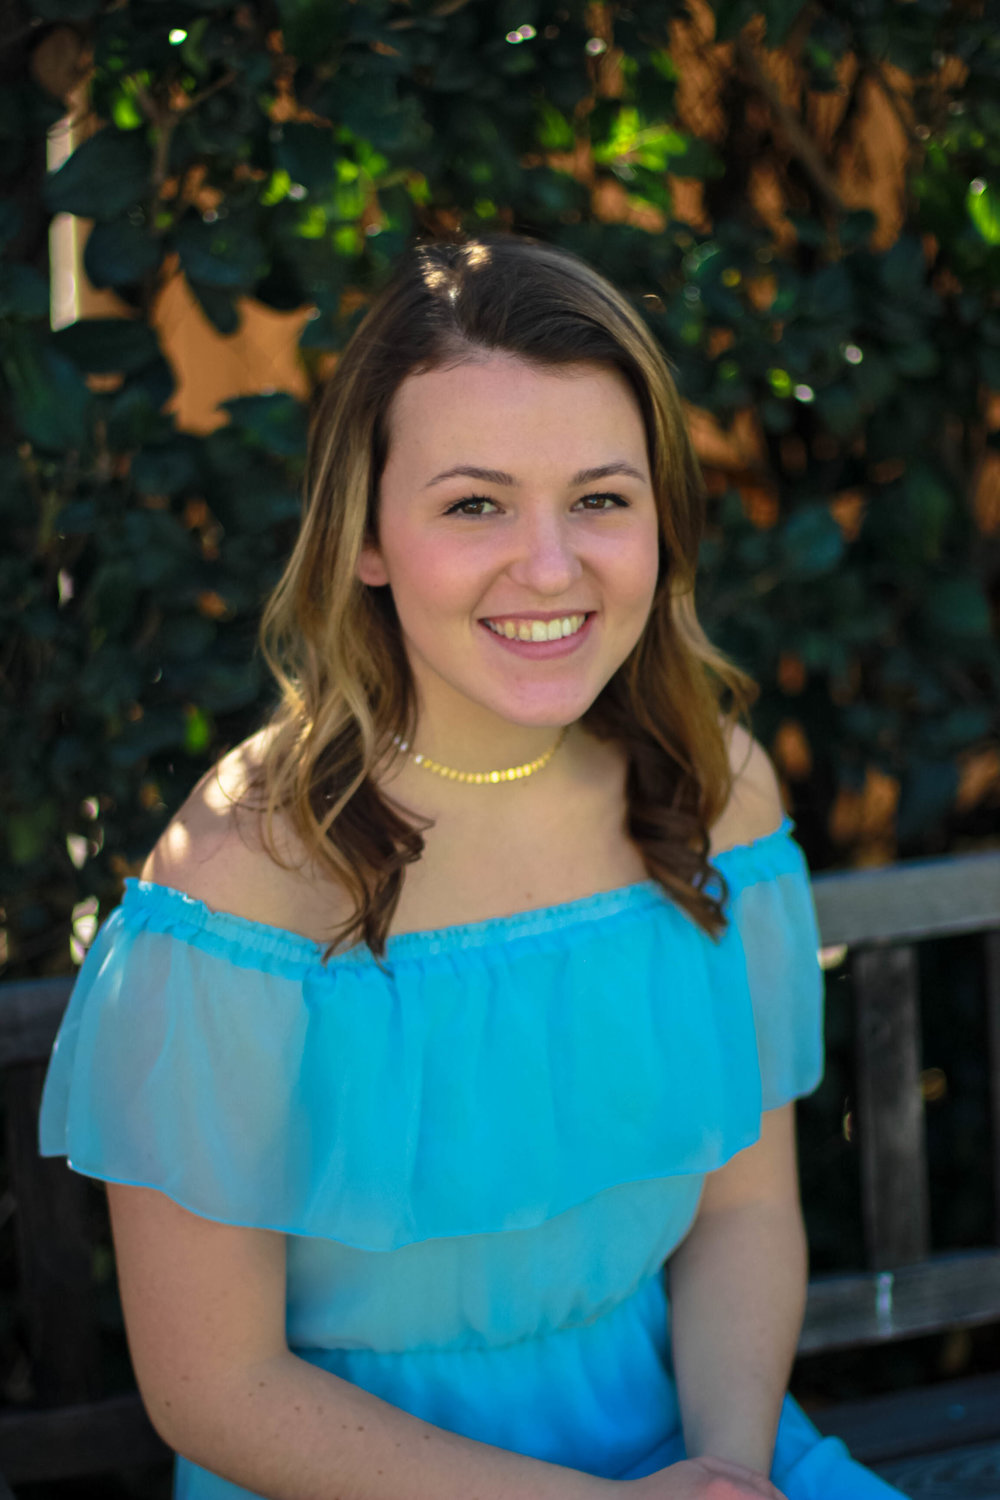 Kate - Director of standards and ethics MAJOR: Health and Human Sciences; Minor in Spanish YEAR: Sophomore MY FAVORITE PART ABOUT ADPI: At ADPI, I am constantly surrounded by like-minded women who constantly support each other in every single aspect of each other's lives. To be surrounded by constant encouragement and love is absolutely amazing, especially because I am encouraged and loved for being exactly who I am. I don't have to be anyone other than myself here, and I feel constantly built up. Being so far from my home in New England an be tough sometimes, but ADPI feels just about as close to home as possible.